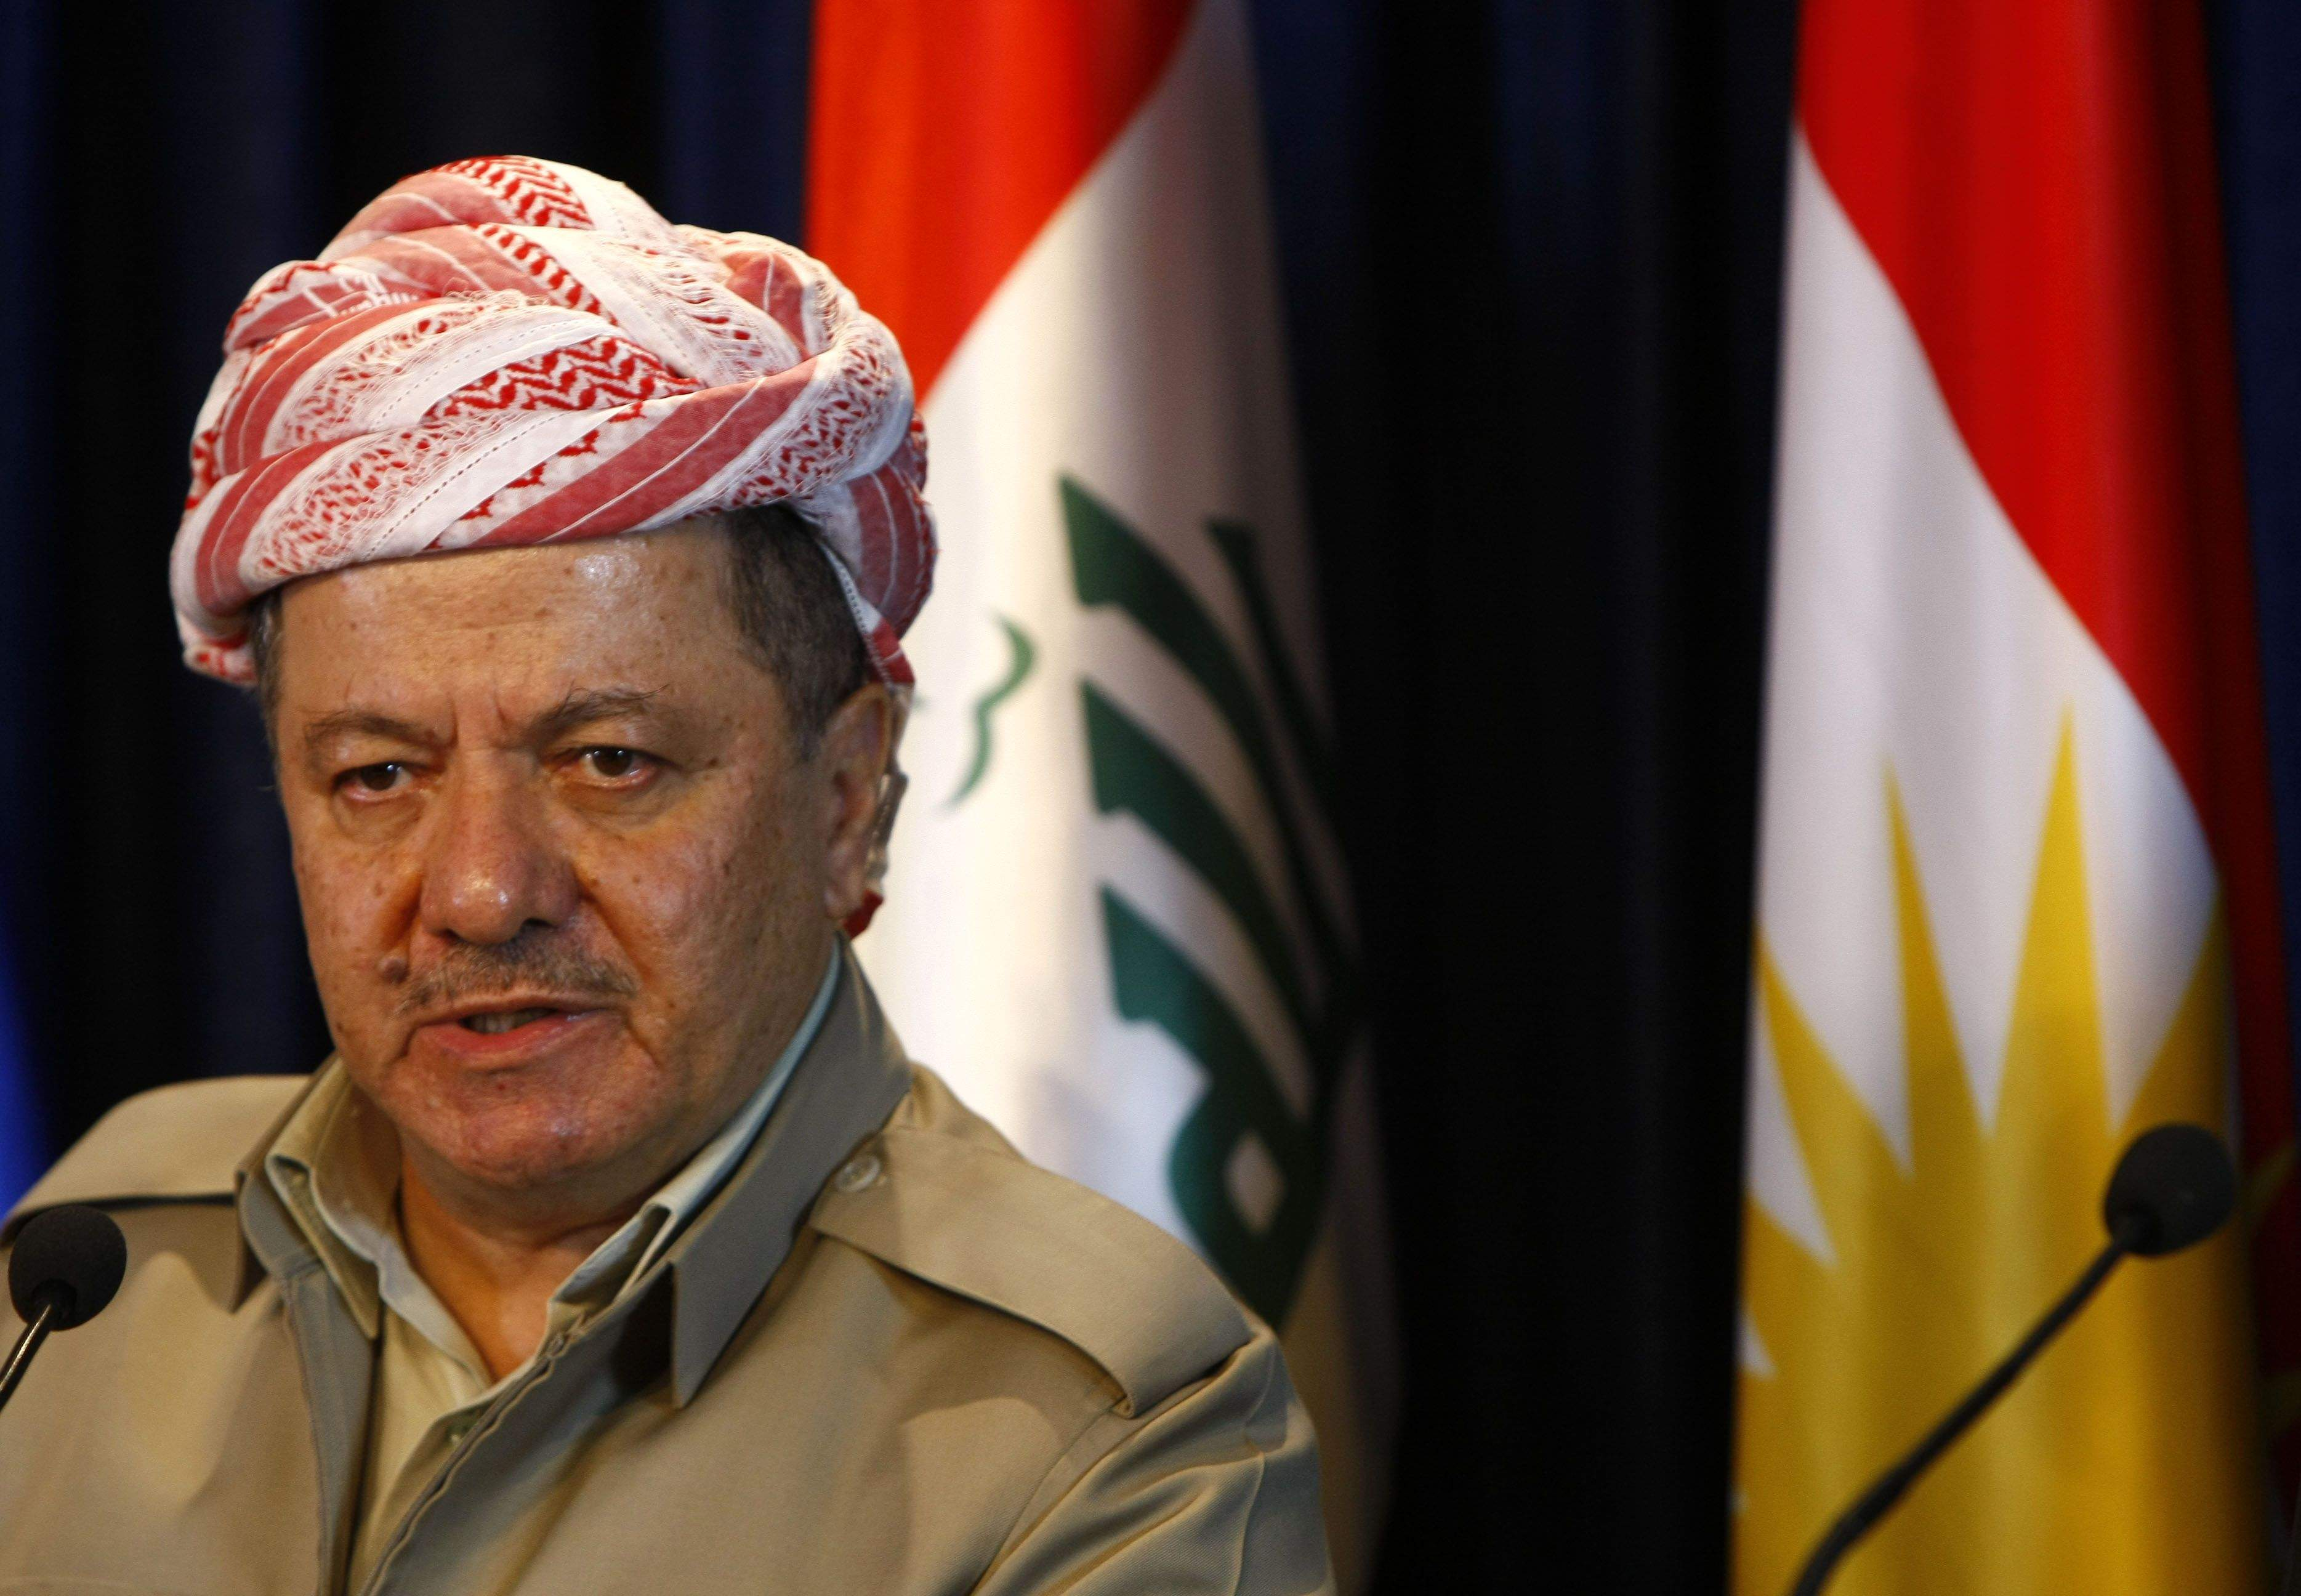 Kurds may seek Iraq backing